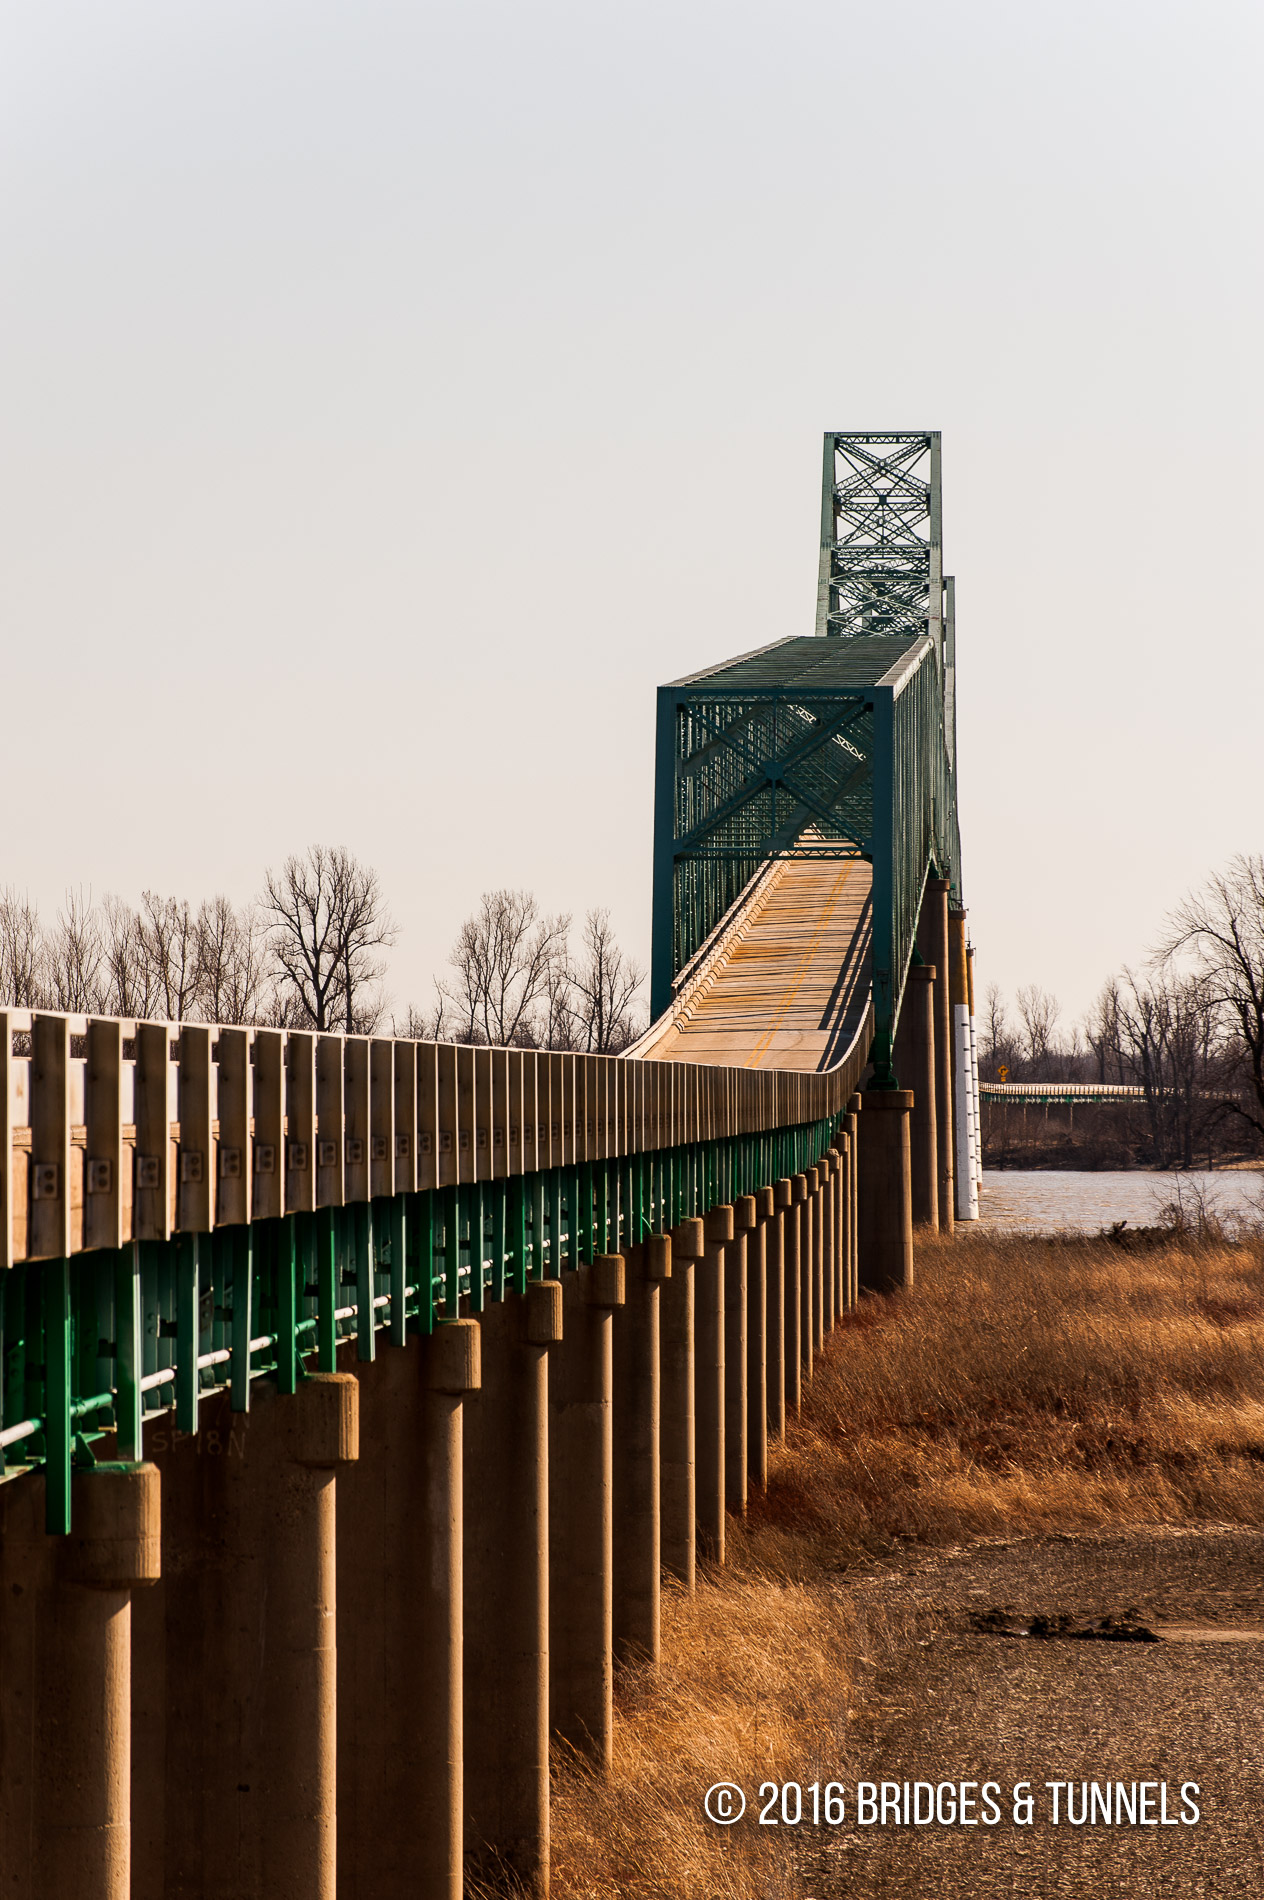 Cairo Bridge (US 60, US 62)